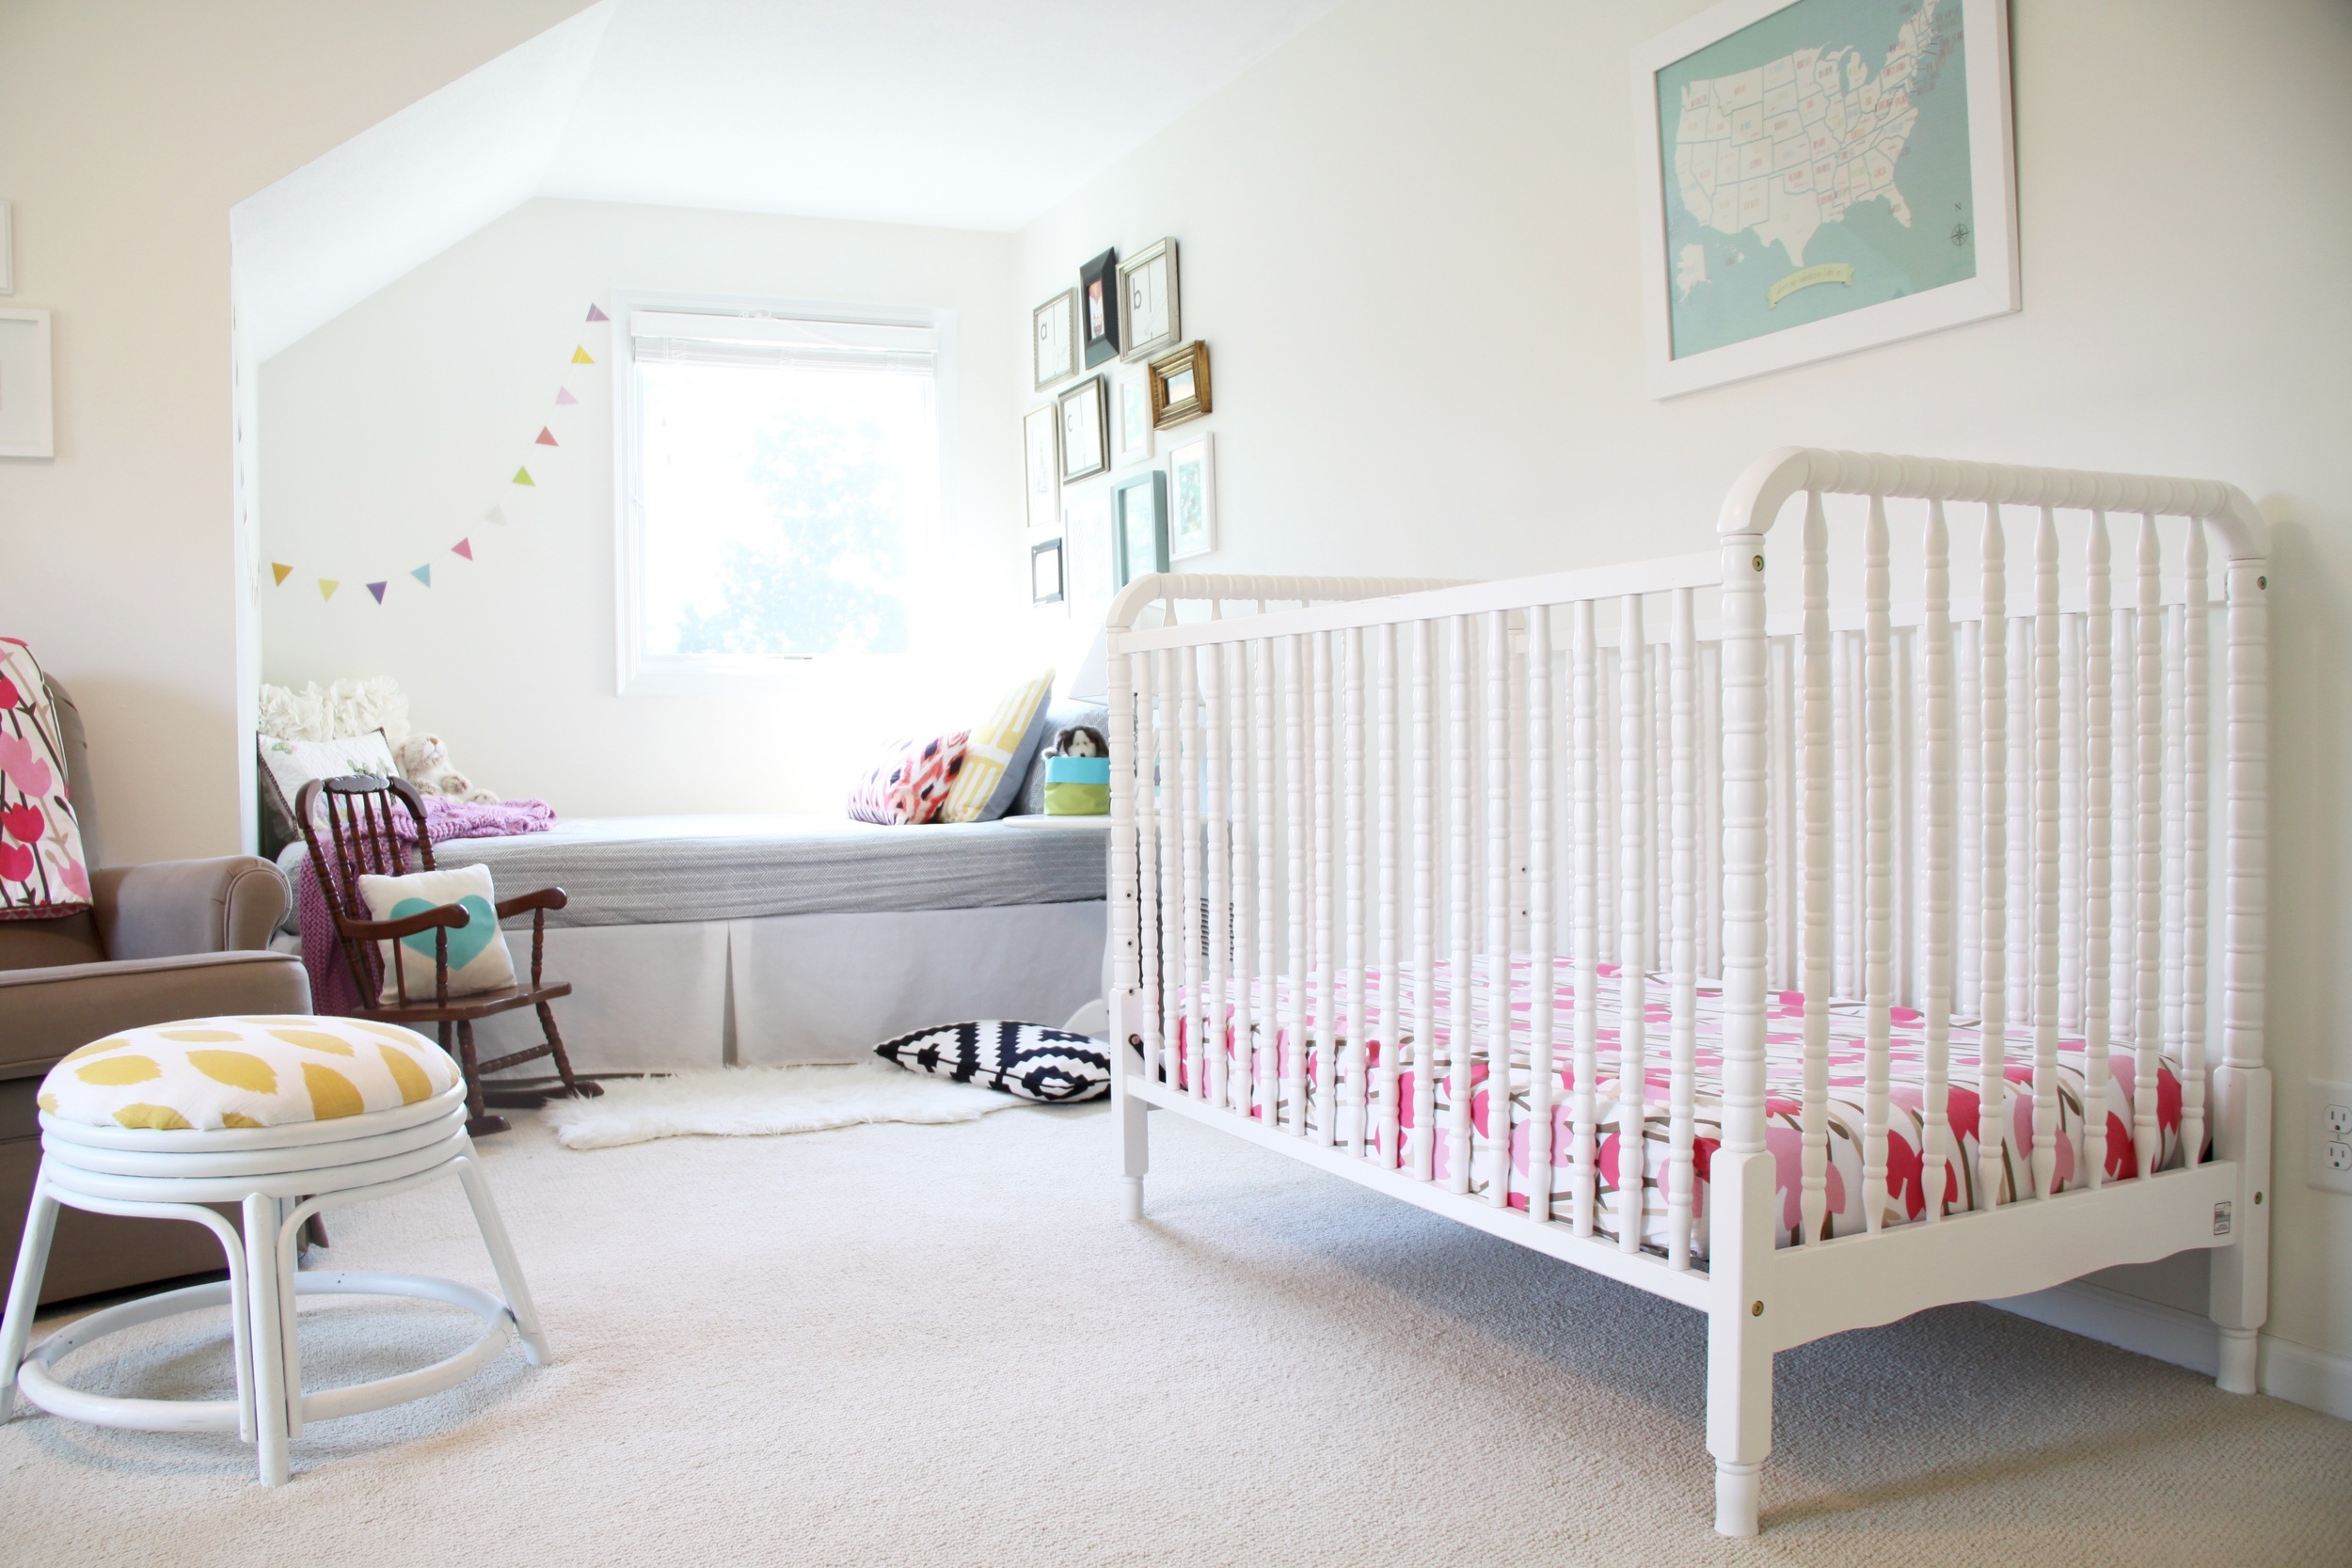 Nursery White Jenny Lind Crib and Reading Corner